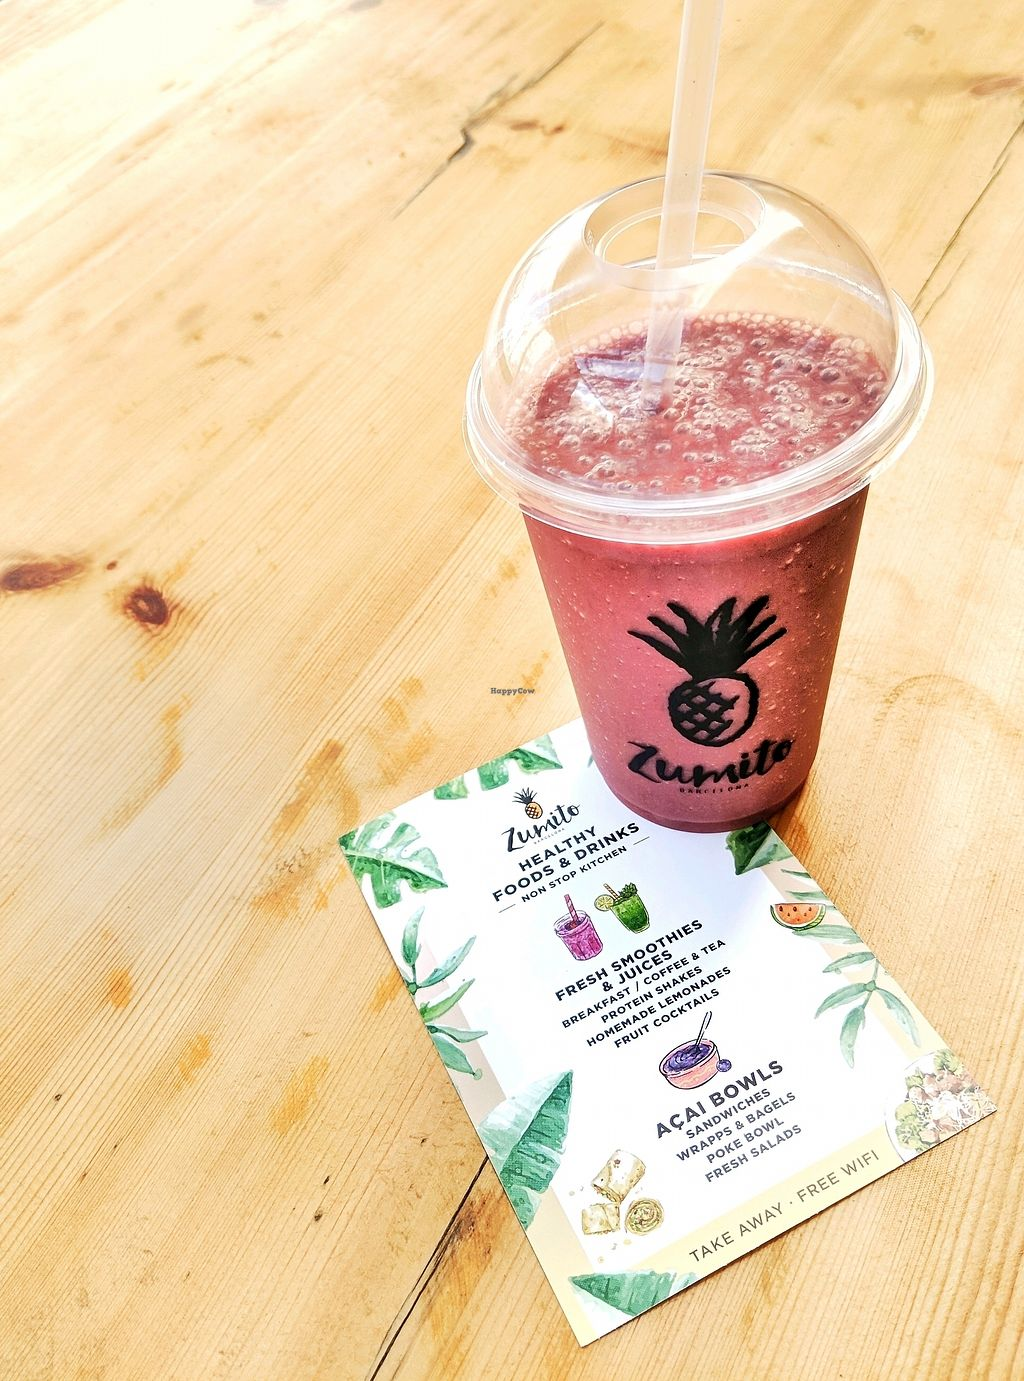 """Photo of Zumito  by <a href=""""/members/profile/DanielReynolds"""">DanielReynolds</a> <br/>Yummy Smoothie  <br/> March 16, 2018  - <a href='/contact/abuse/image/114548/371398'>Report</a>"""